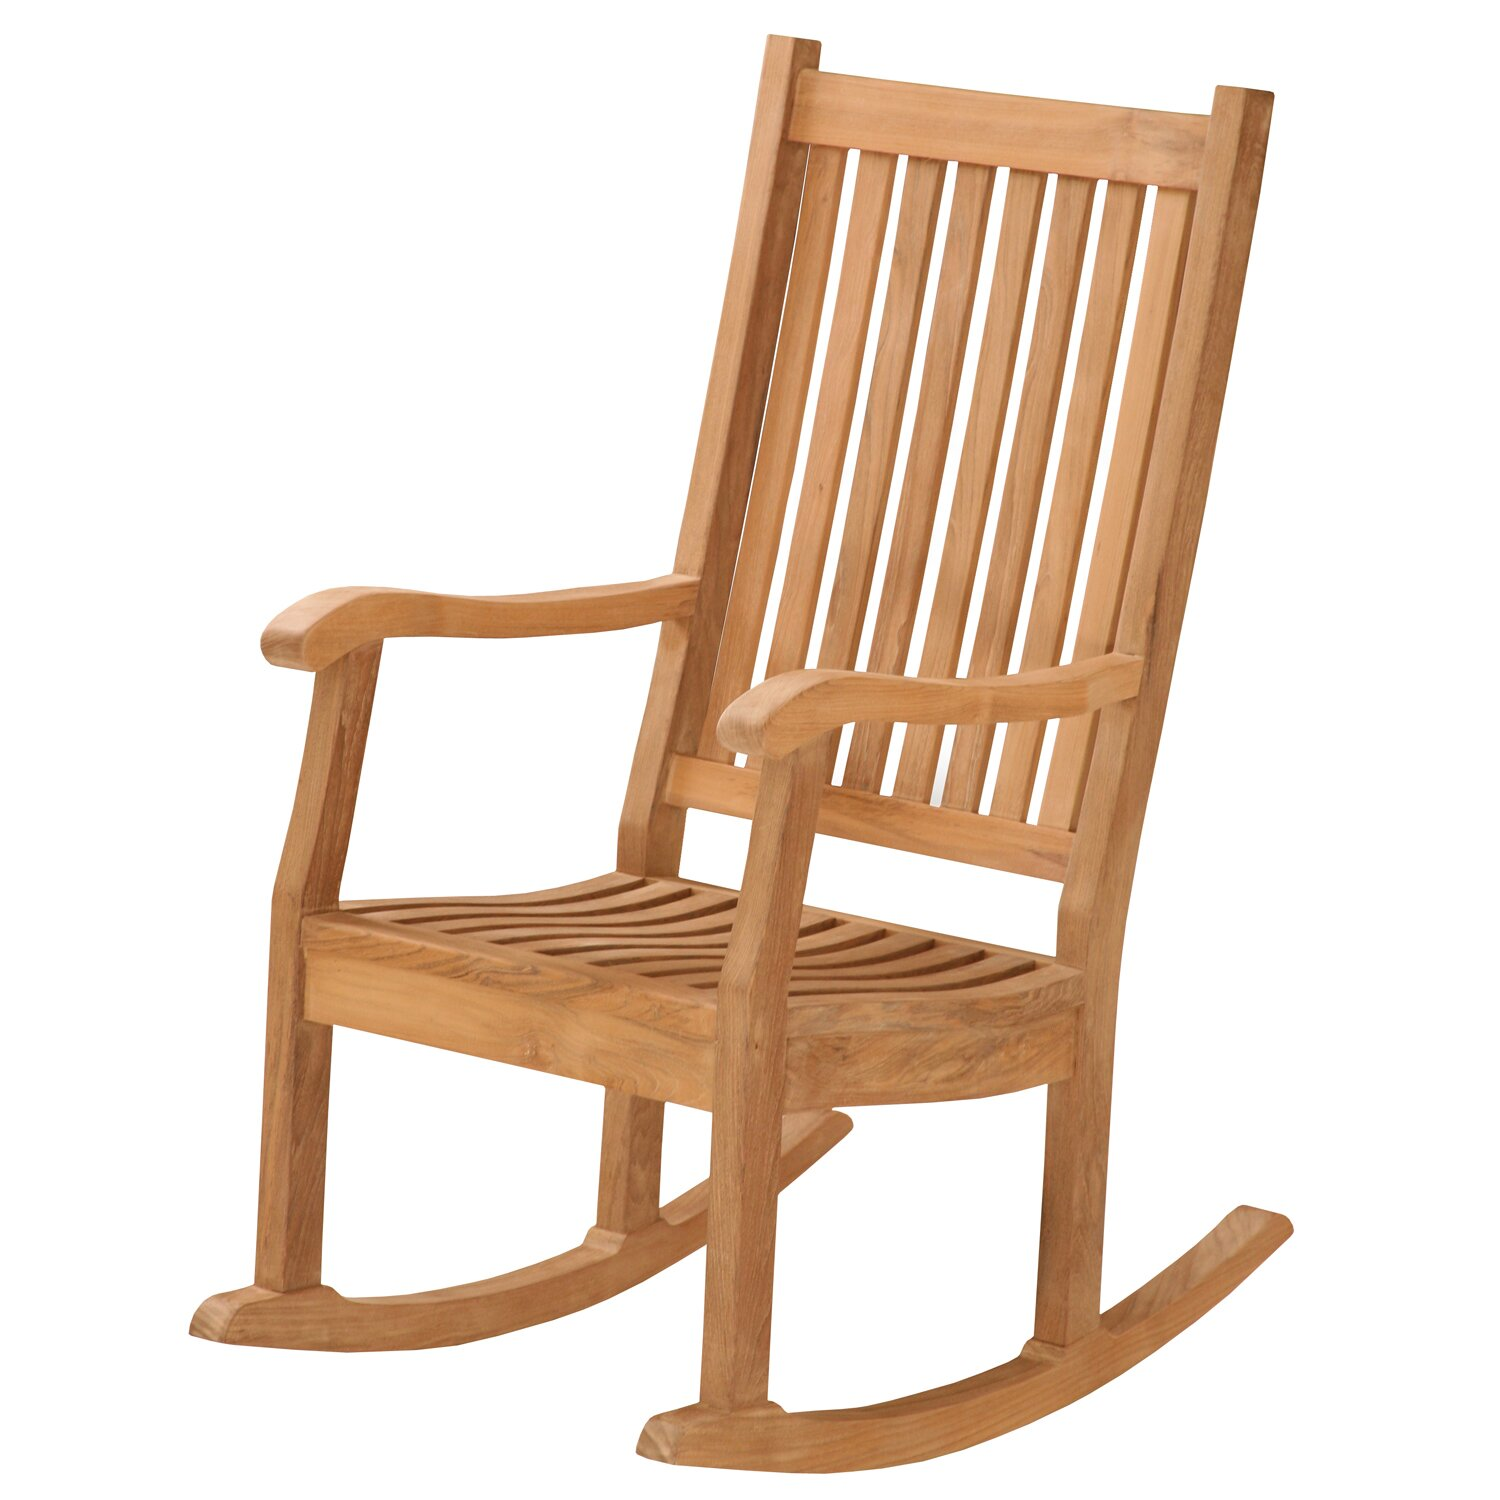 Darby Home Co Lucy Teak Rocking Chair Wayfair